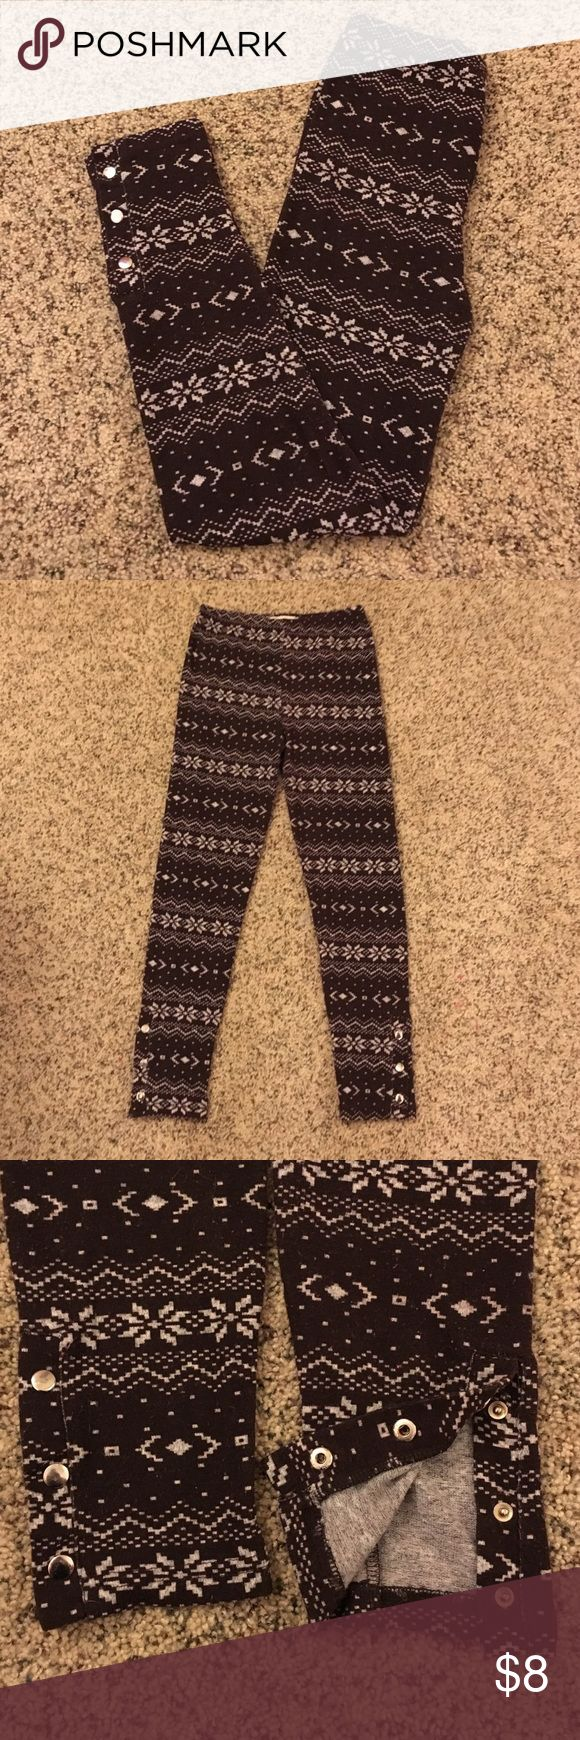 Winter leggings Get ready for winter with these cozy leggings from Rue 21! Dark brown with seasonal pattern. 3 snaps at the bottom of each leg that work! 90% nylon and 10% spandex. Calf length, size medium/large. Pants Leggings